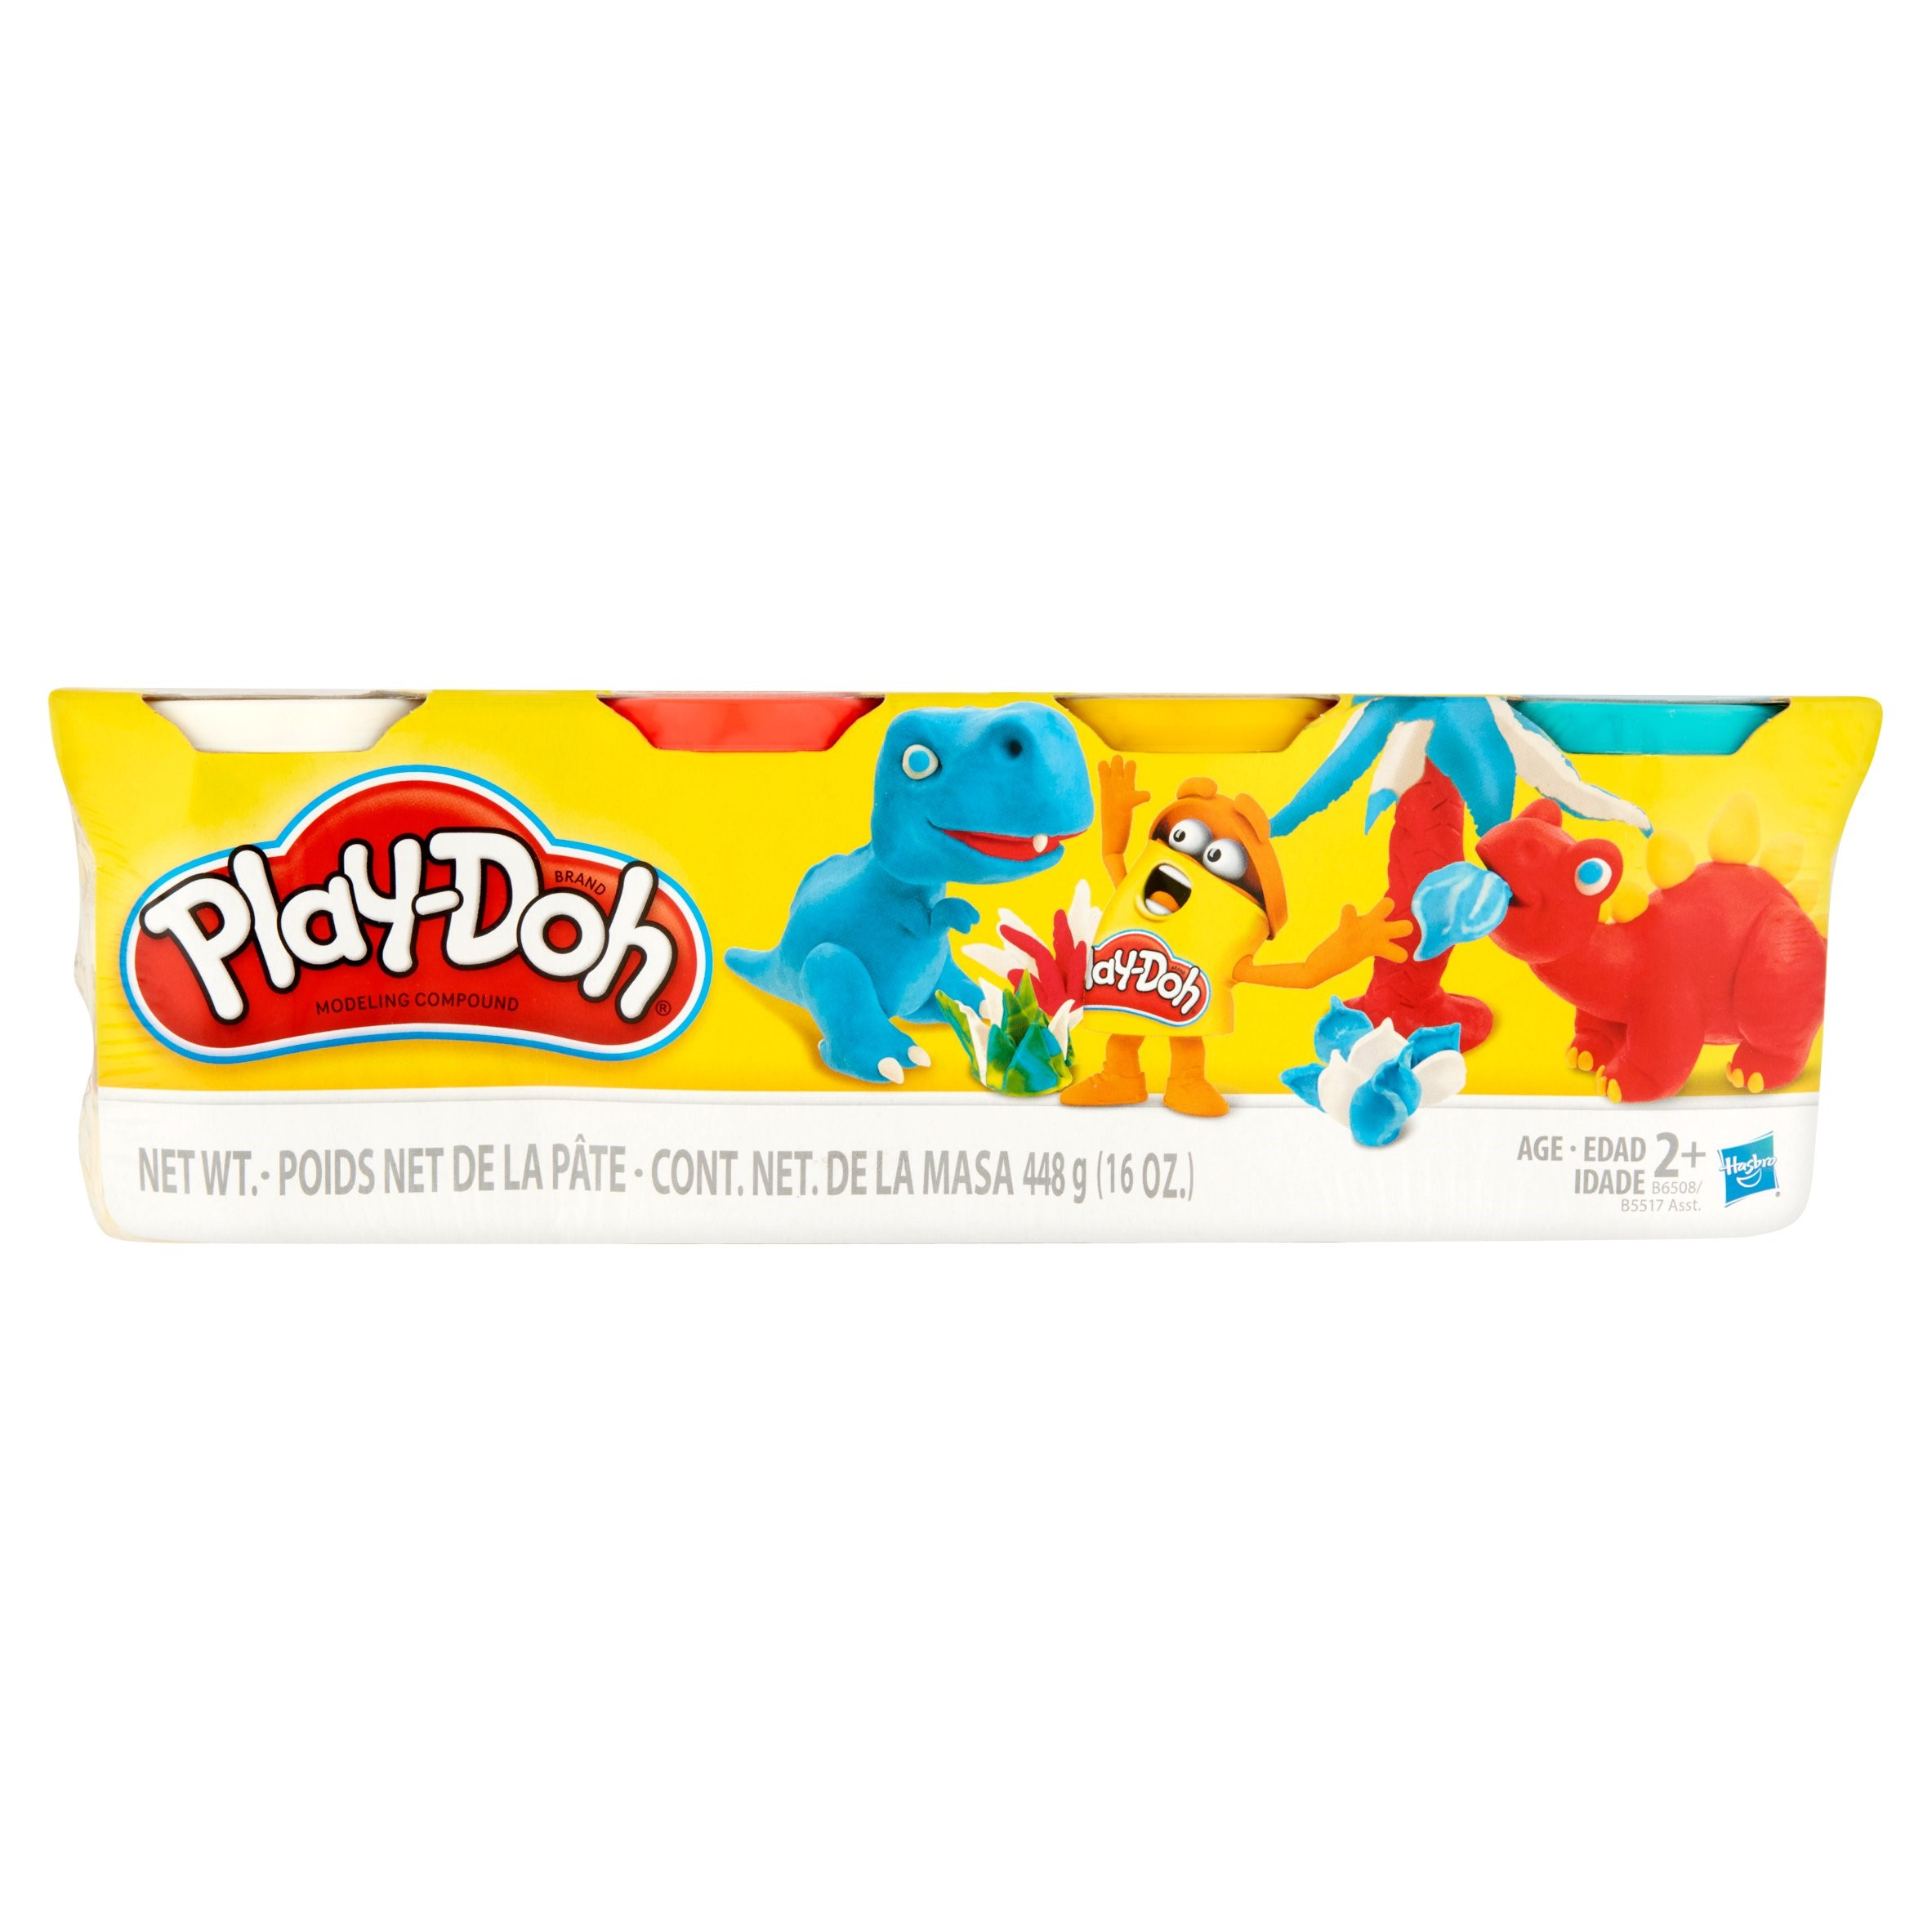 Play-Doh Pack of Classic Colors: White, Red, Yellow & Blue, 16 oz